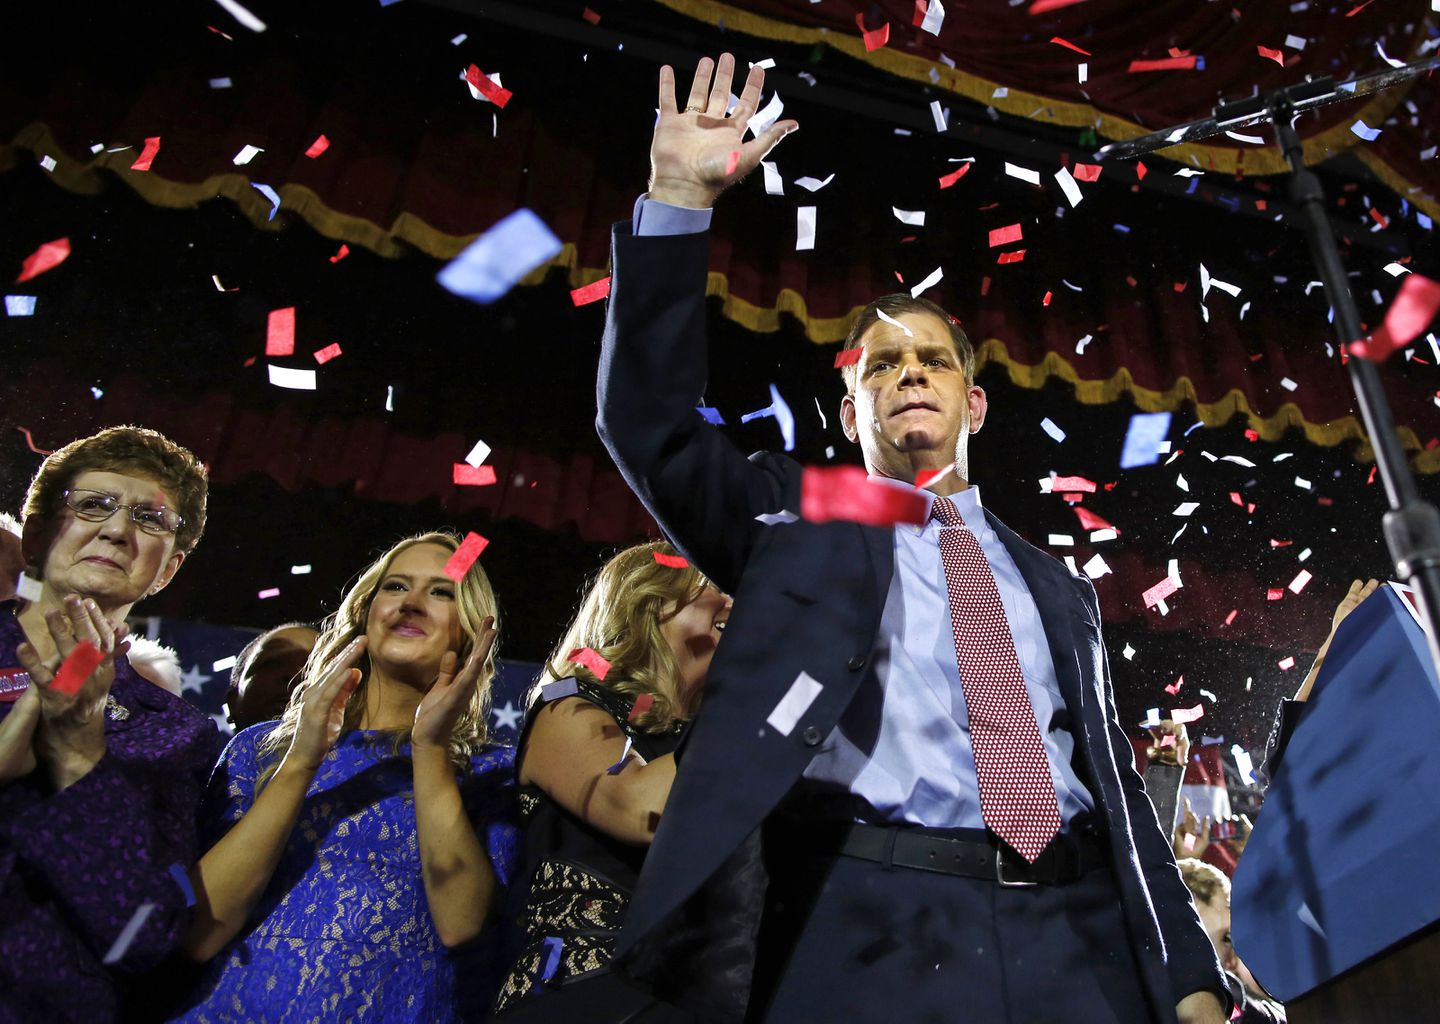 Walsh celebrates with his longtime partner, Lorrie Higgins, her daughter, Lauren, and his mother, Mary, at his election night party at the Park Plaza Hotel in 2013.